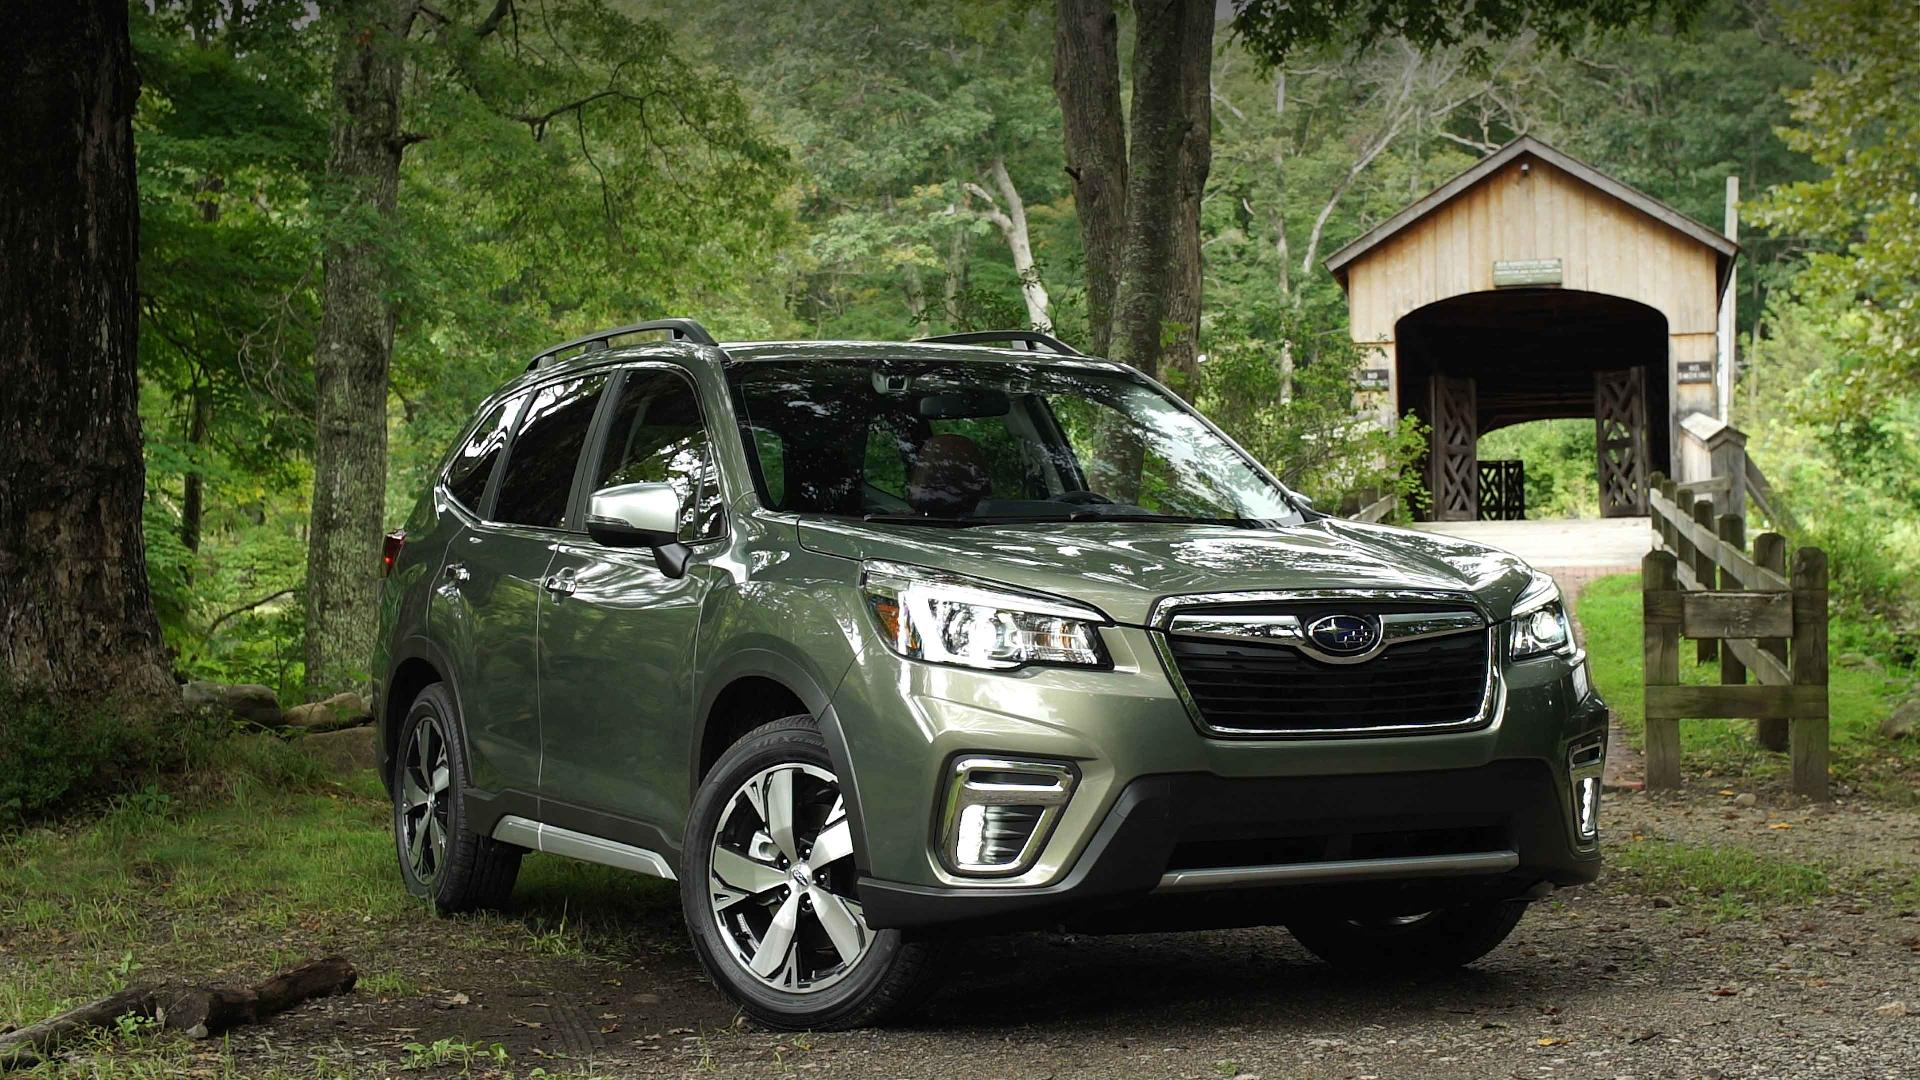 2020 Subaru Forester Maintenance Schedule 2019 Subaru Forester Improves Upon a Good Thing   Consumer Reports